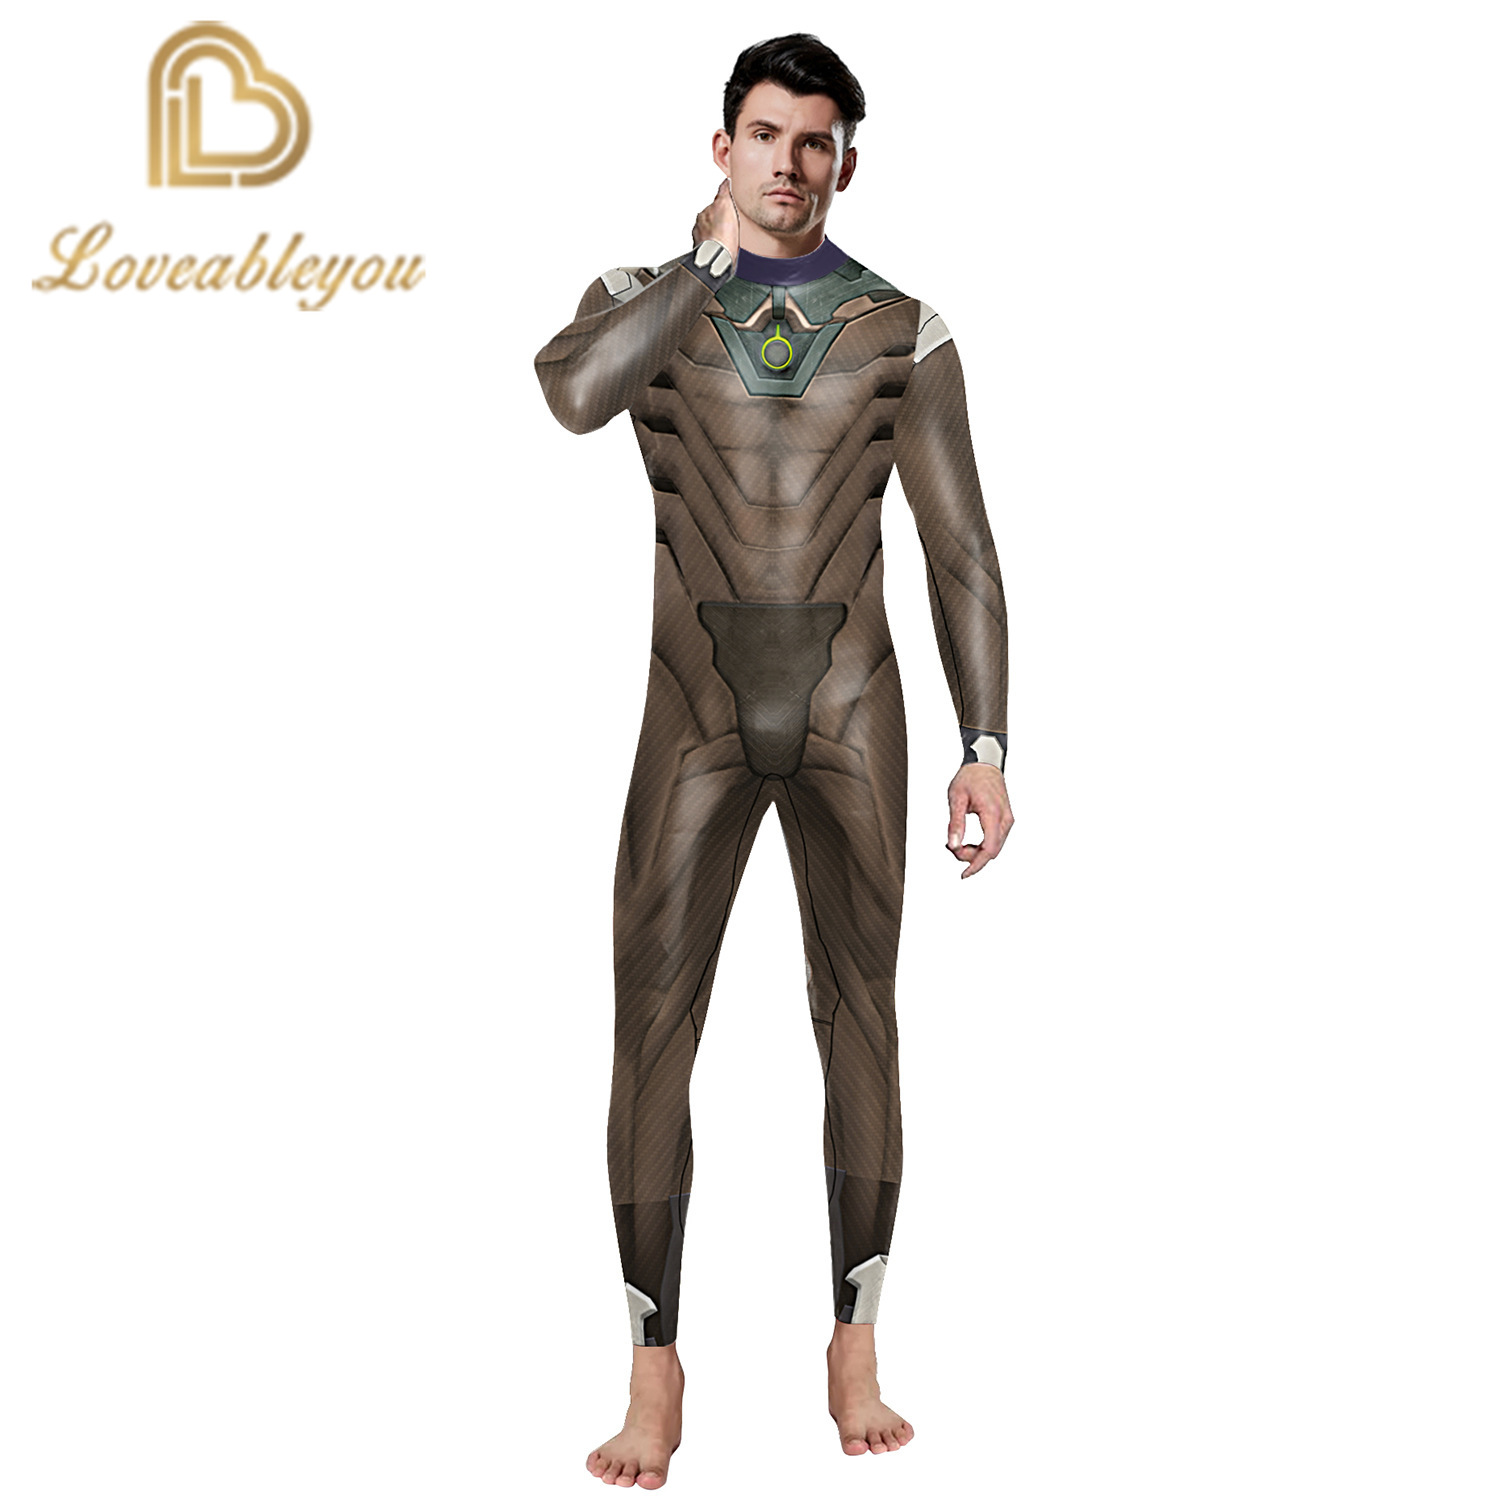 Hot Sale 2019 New Fashion Gaming Cosplay Costume 3D Printed Bodysuit for man Party Cospaly Bodysuit Sexy Jumpsuits 2